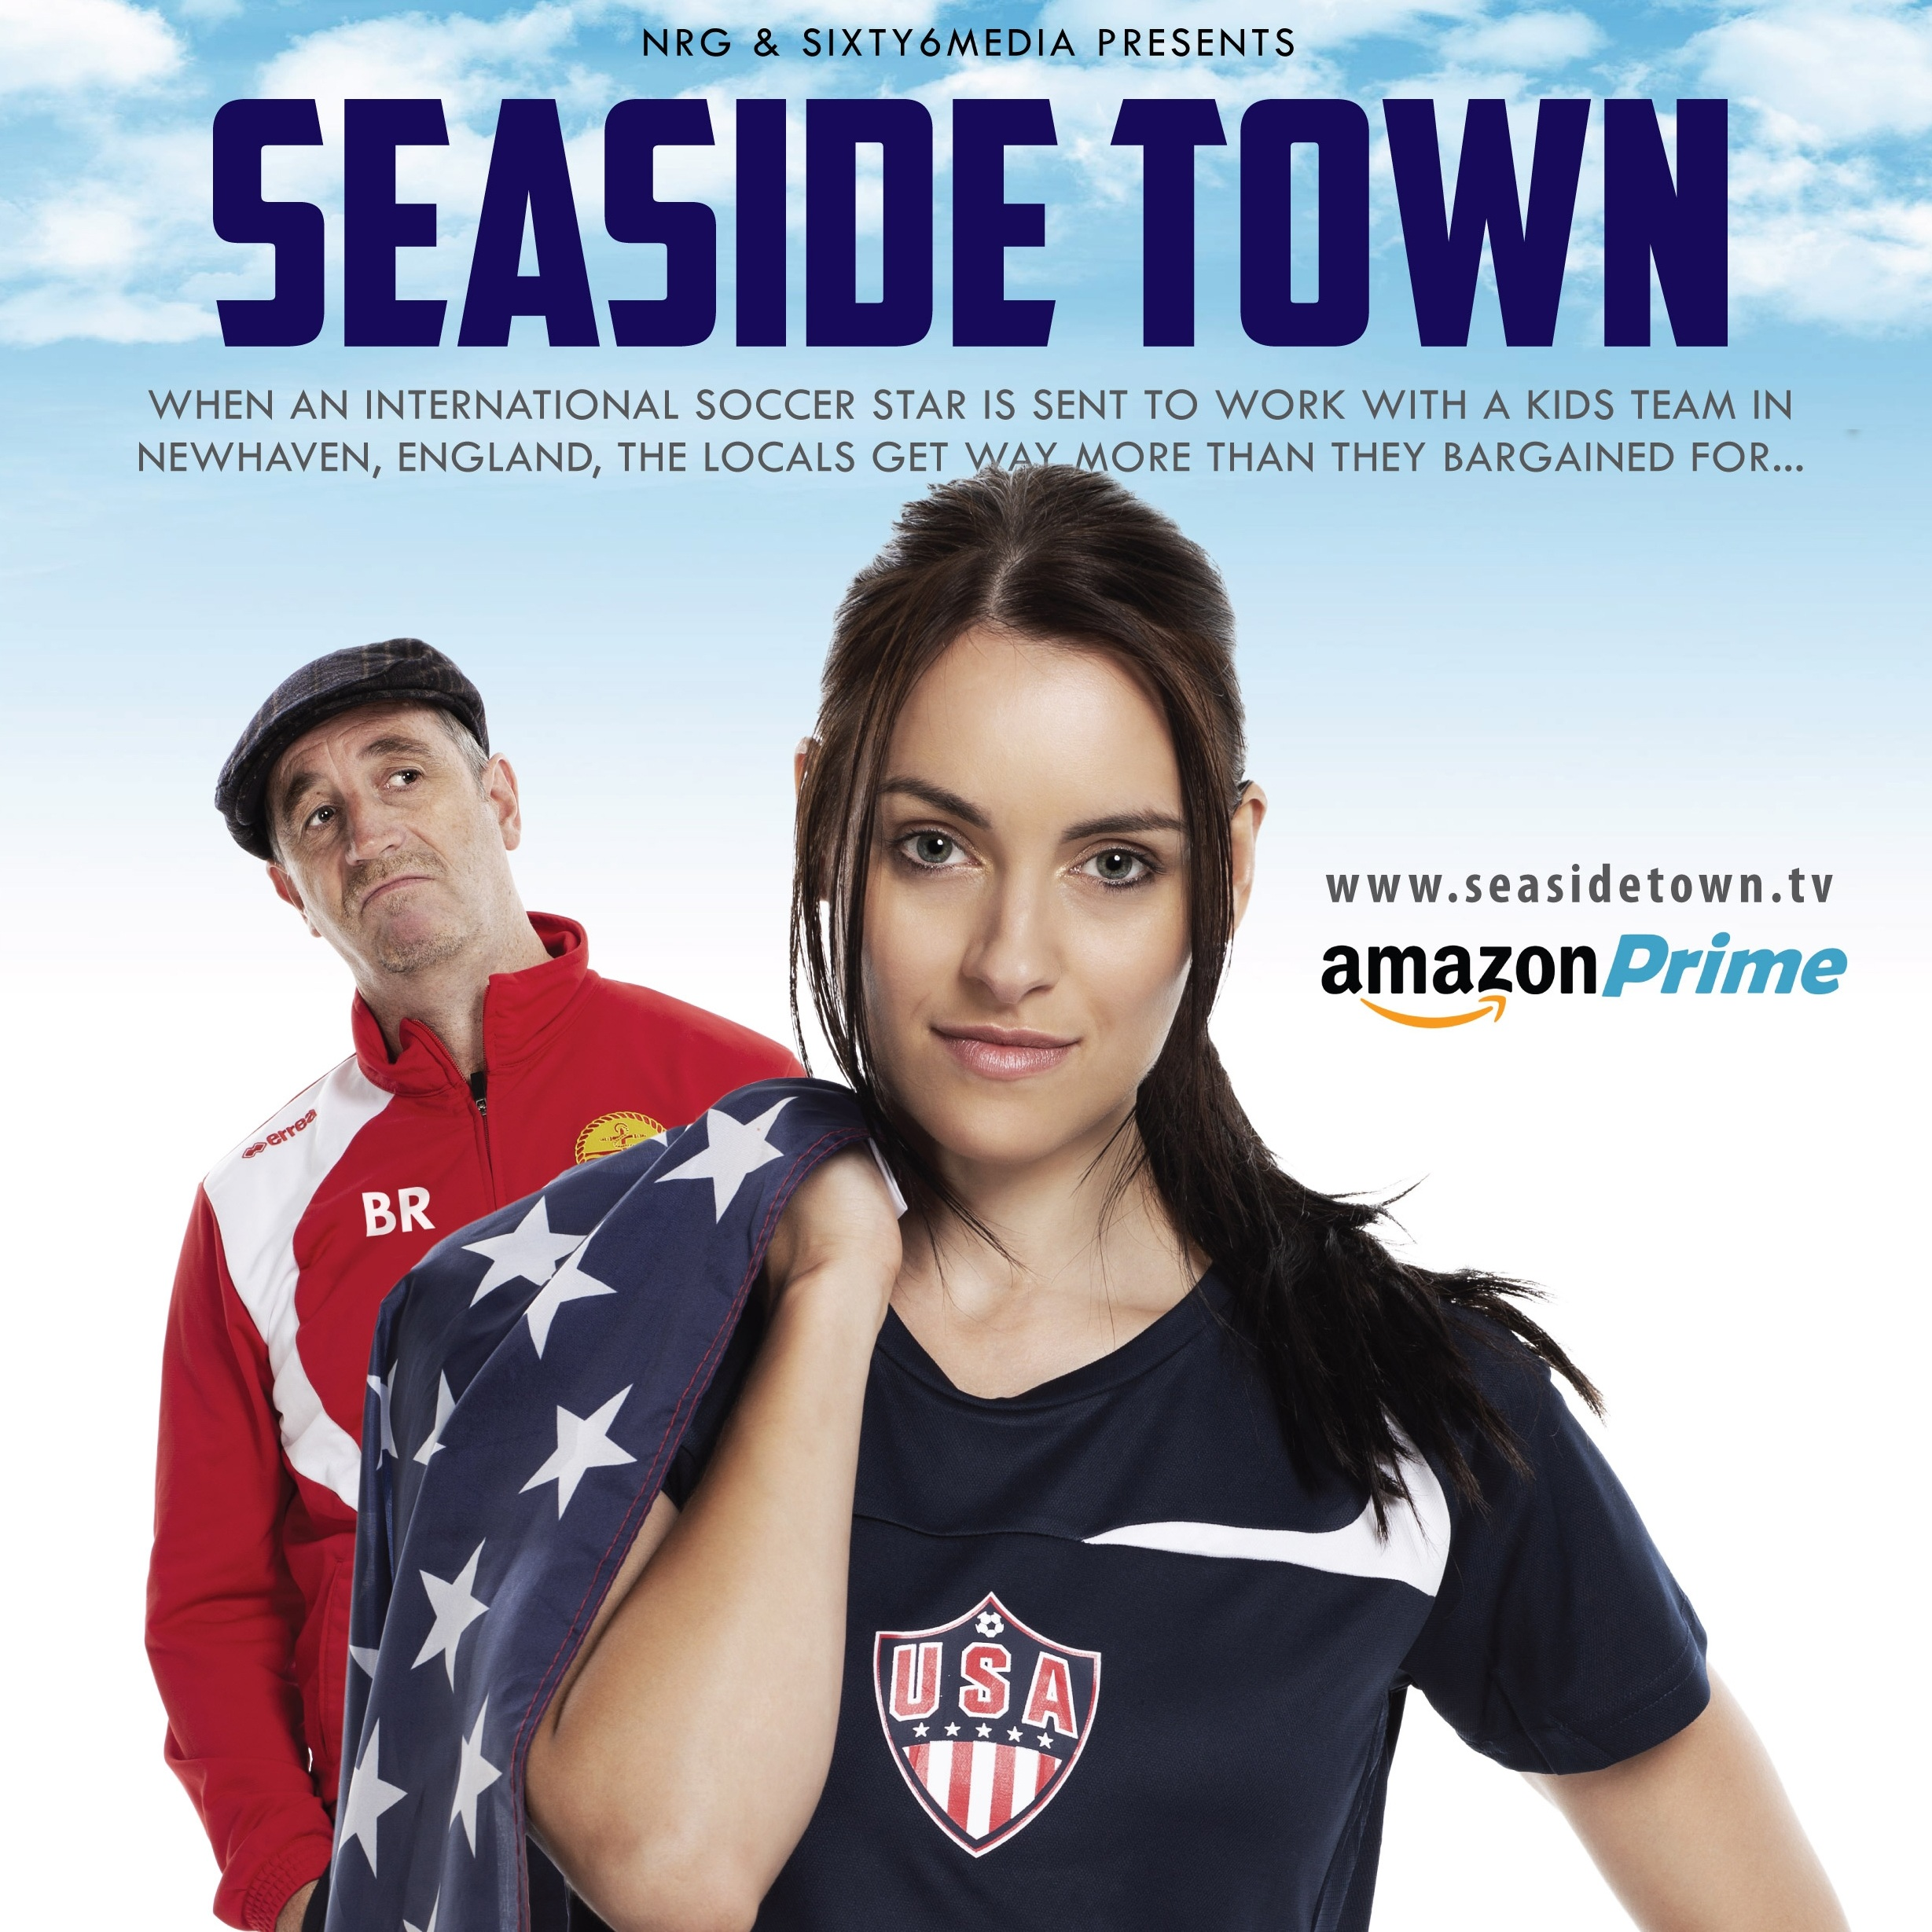 Seaside Town - Shot in Newhaven using the town's talented population. Available now on Amazon Prime UK / USA